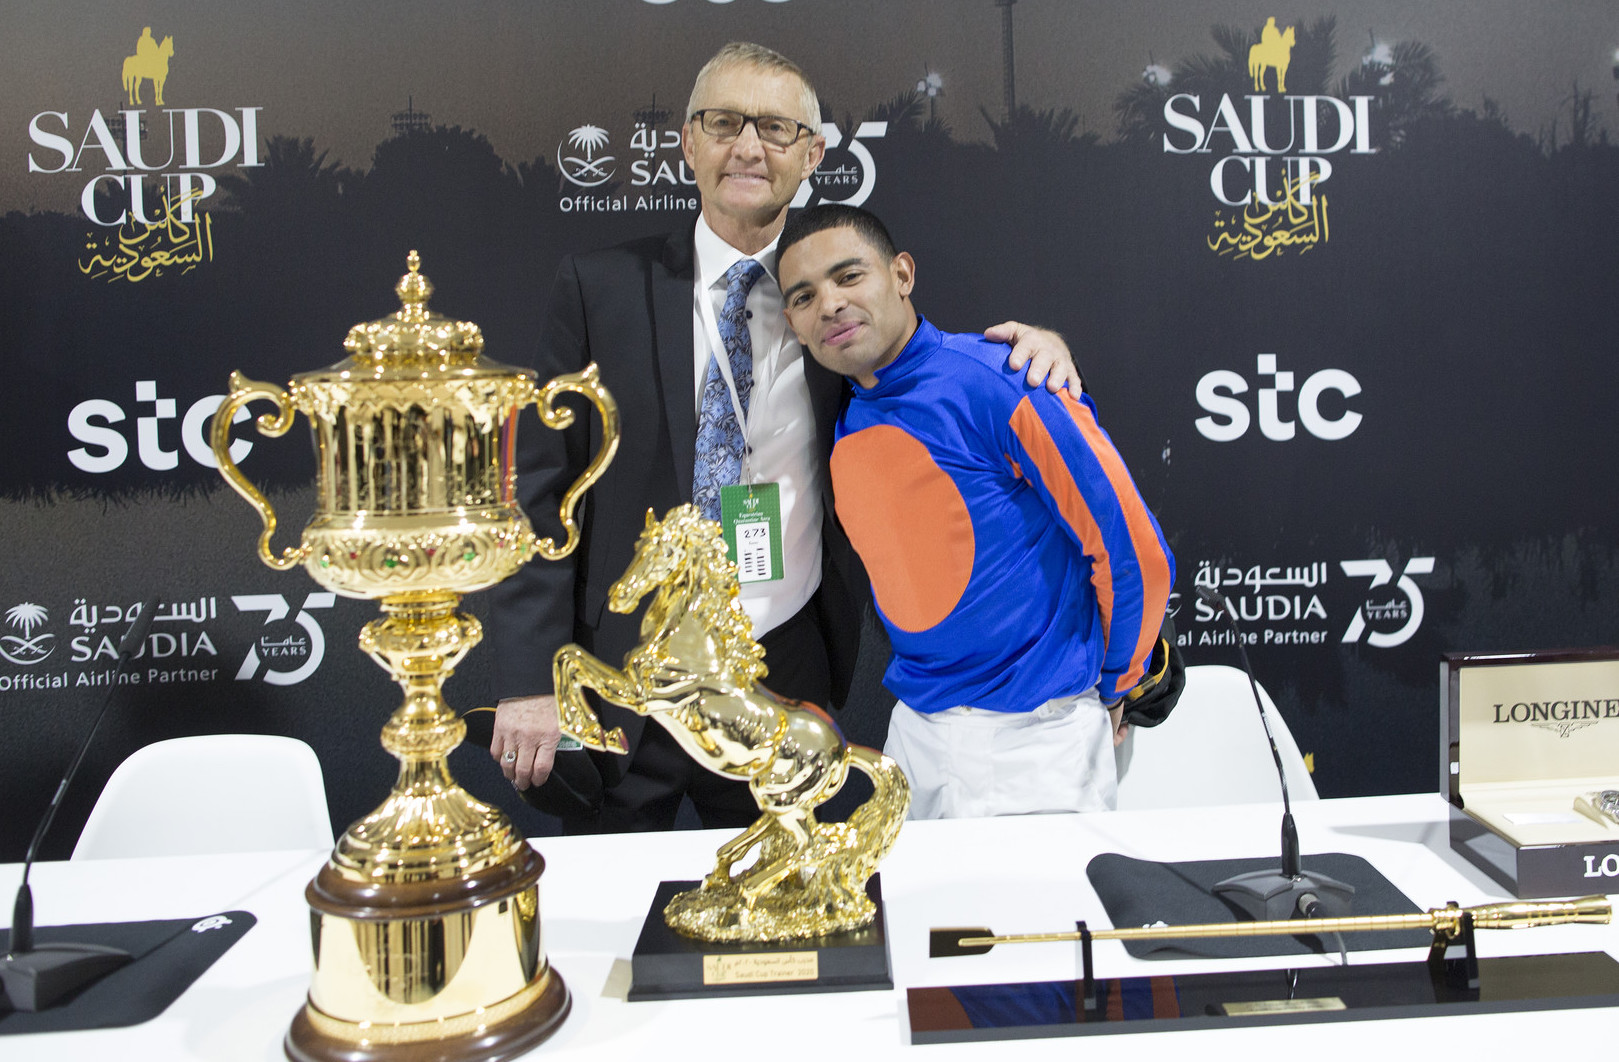 Golden moment: trainer Jason Servis and jockey Luis Saez after the Saudi Cup presentation. Photo: Jockey Club of Saudi Arabia